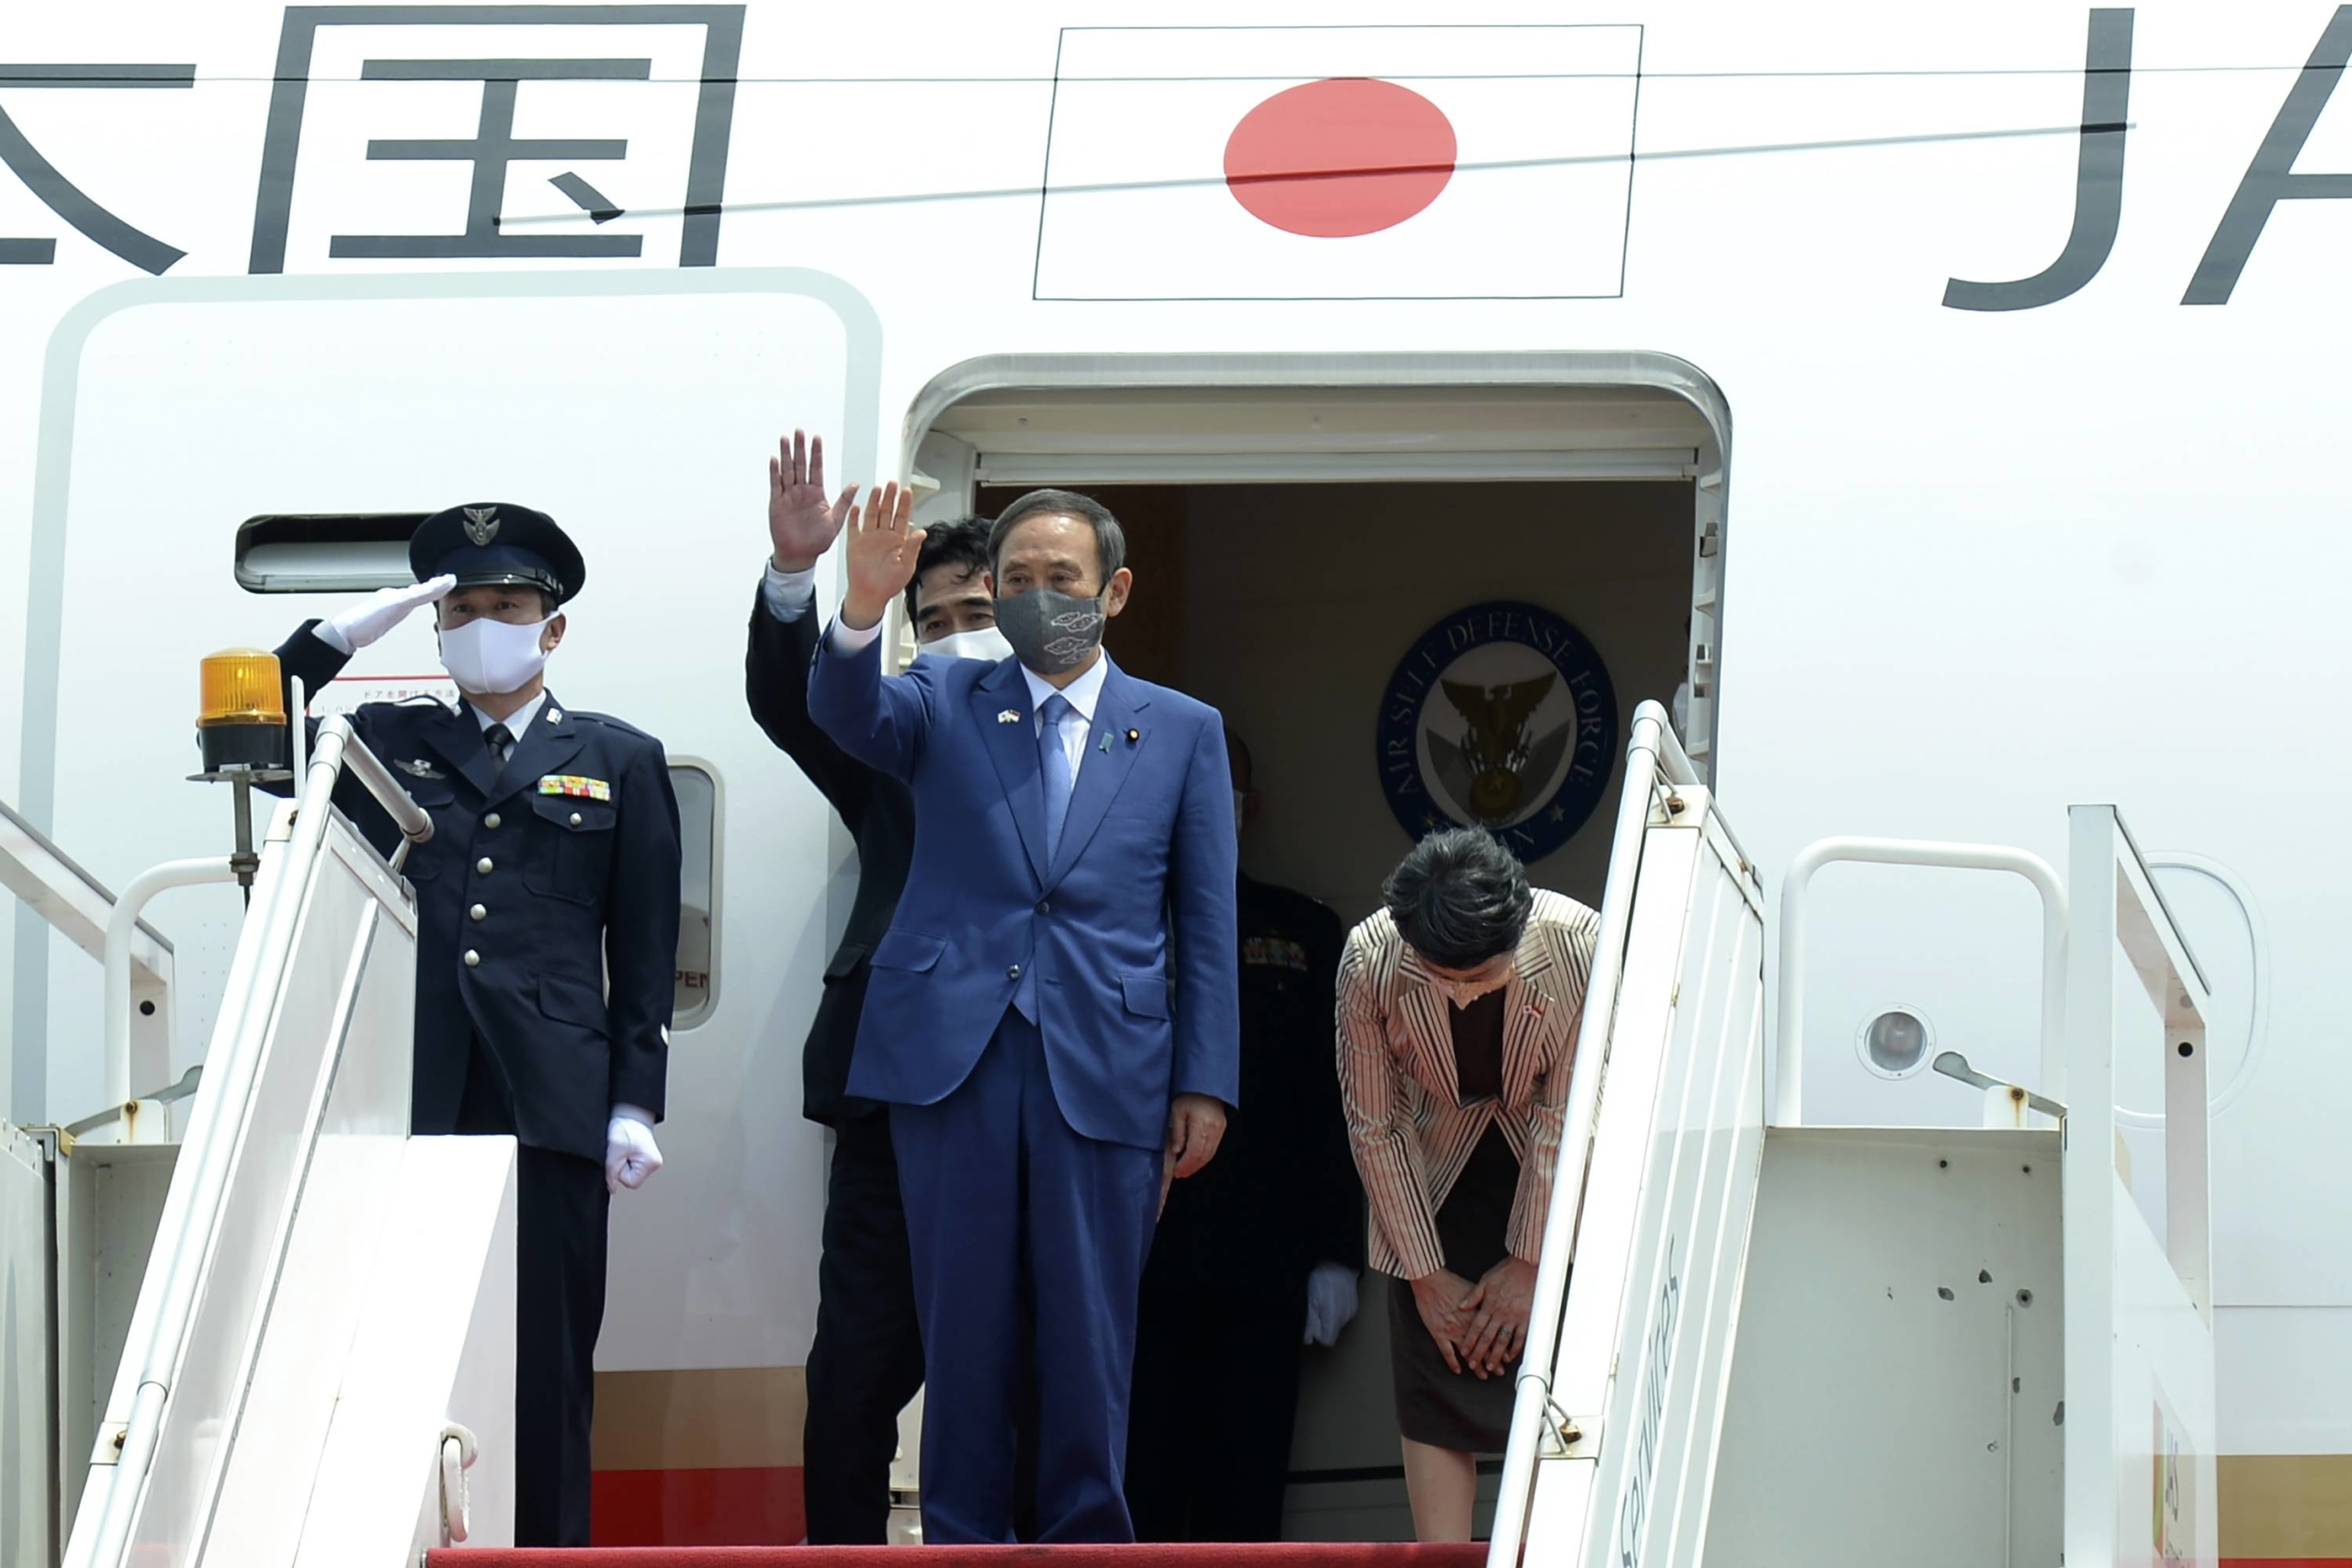 Prime Minister Yoshihide Suga waves as he readies to leave Jakarta on Wednesday. China is credited for making Southeast Asia a priority for Japan, but the region has always been important to Tokyo. | PRESIDENTIAL PALACE / VIA AP